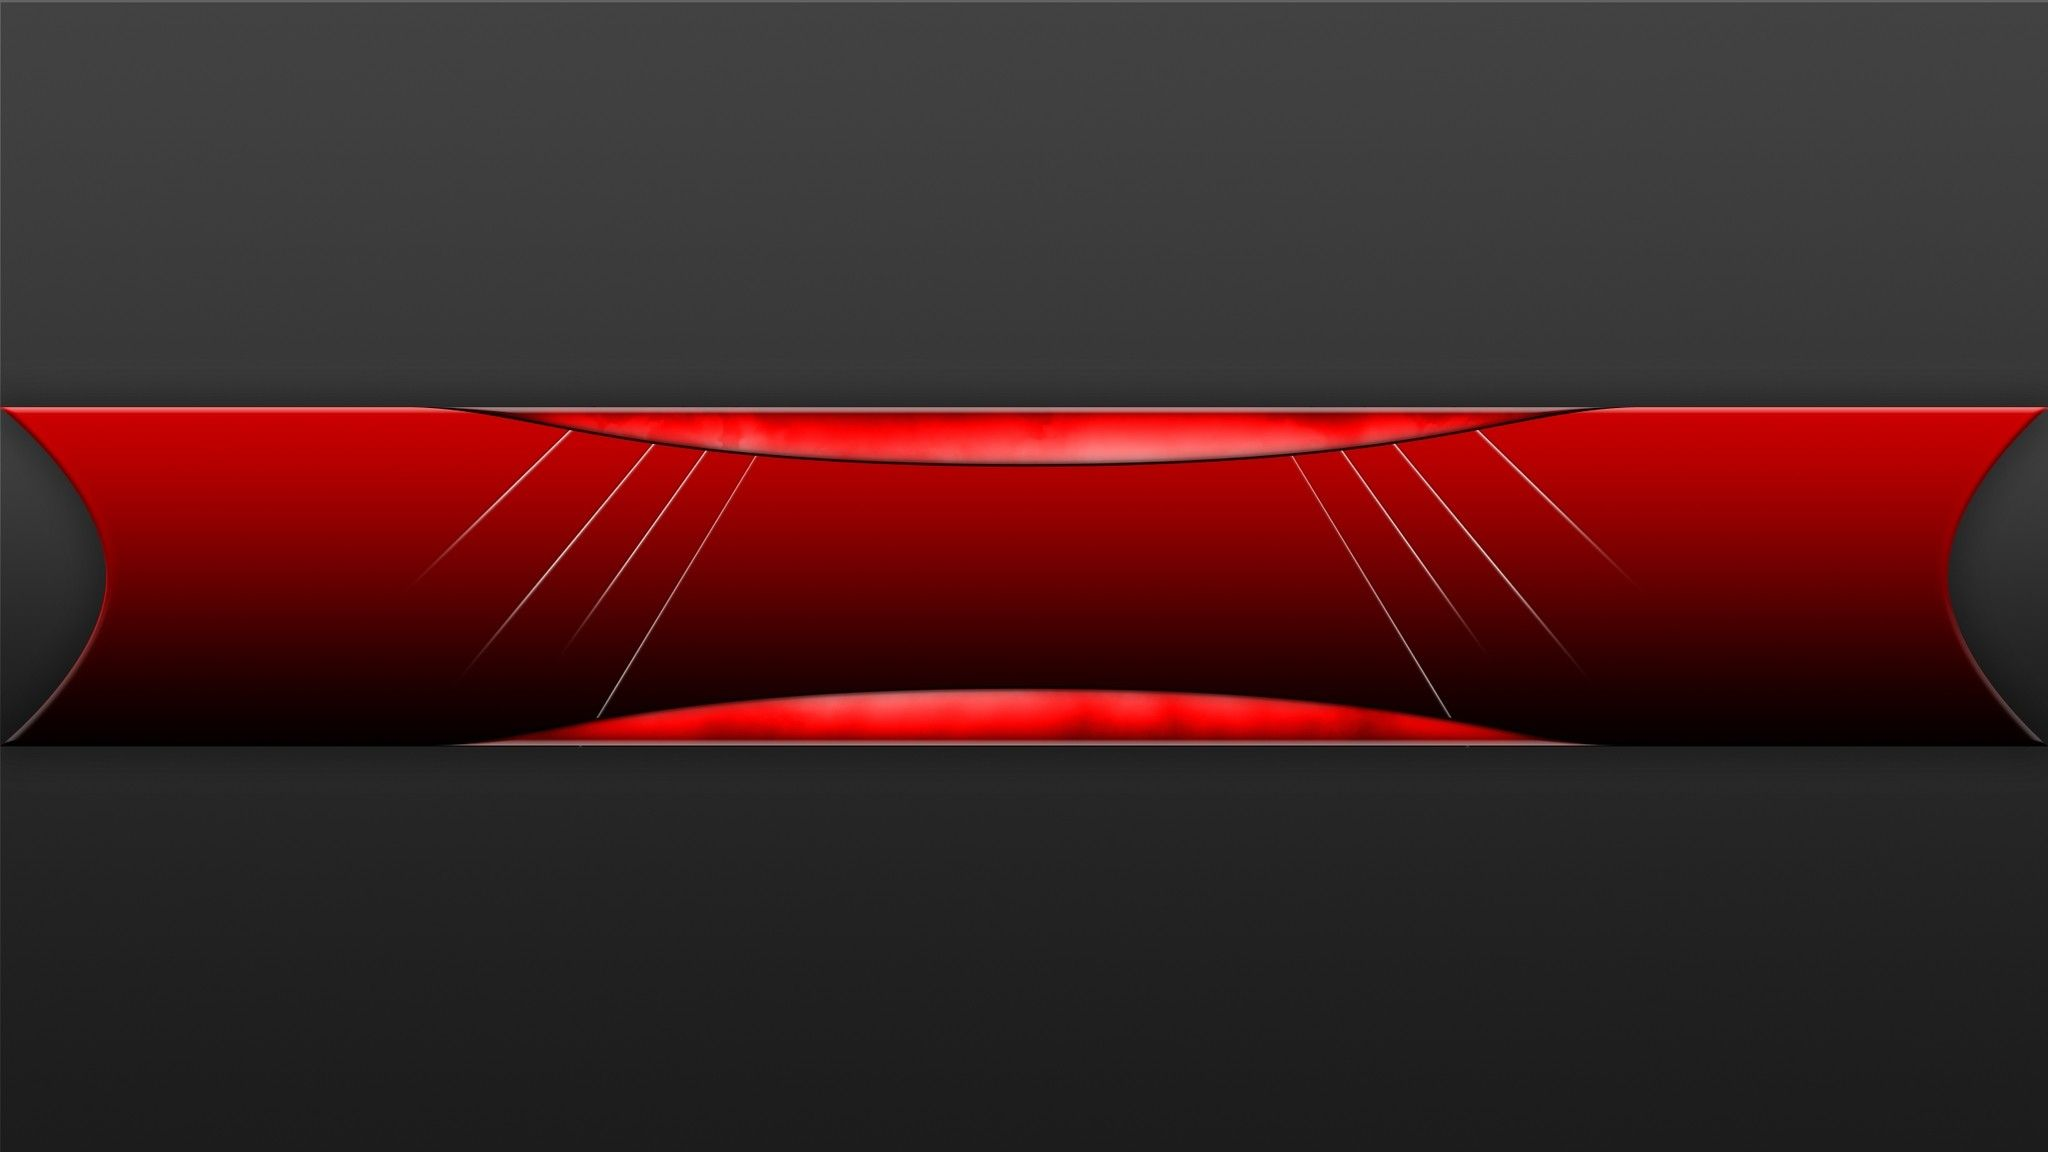 Touch device users can explore by touch or with swipe gestures. Banner Youtube Wallpapers Wallpaper Cave